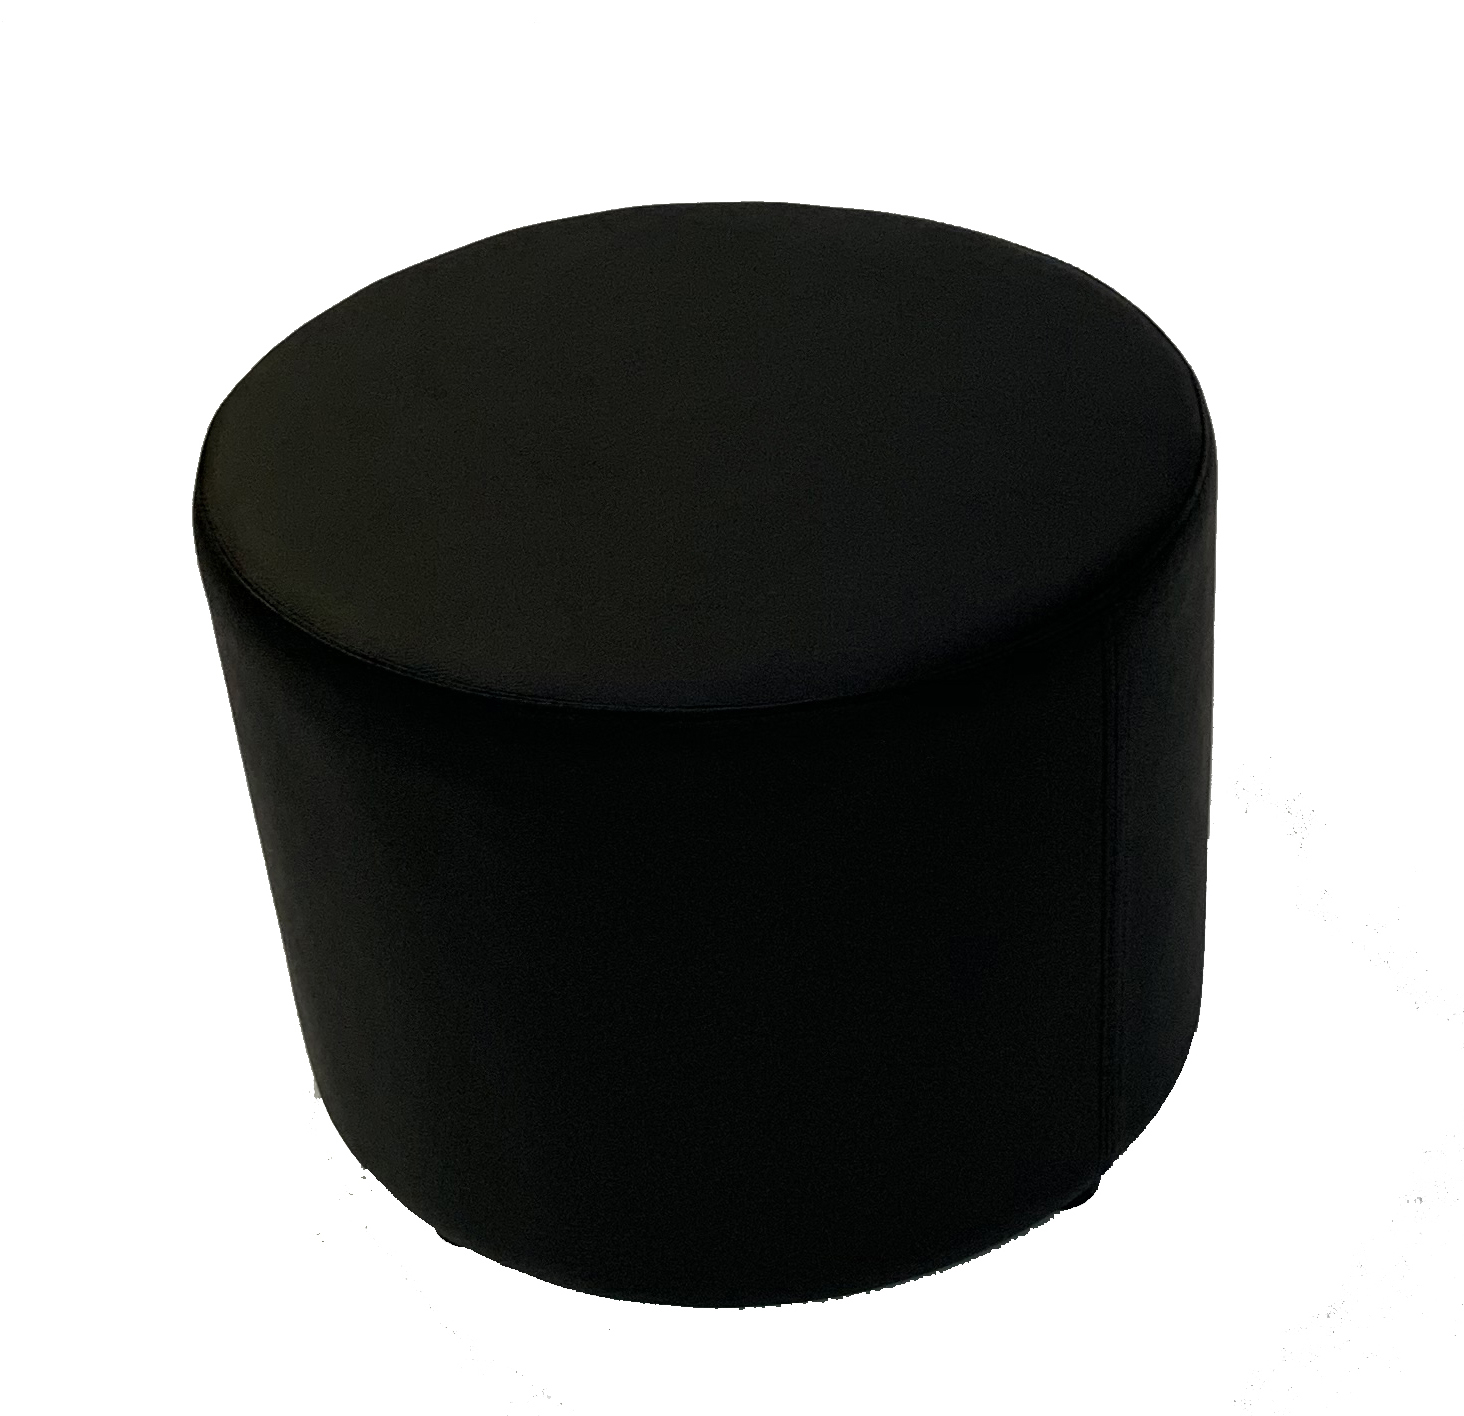 SS-55 Black Round Stool Cube Furniture Rental